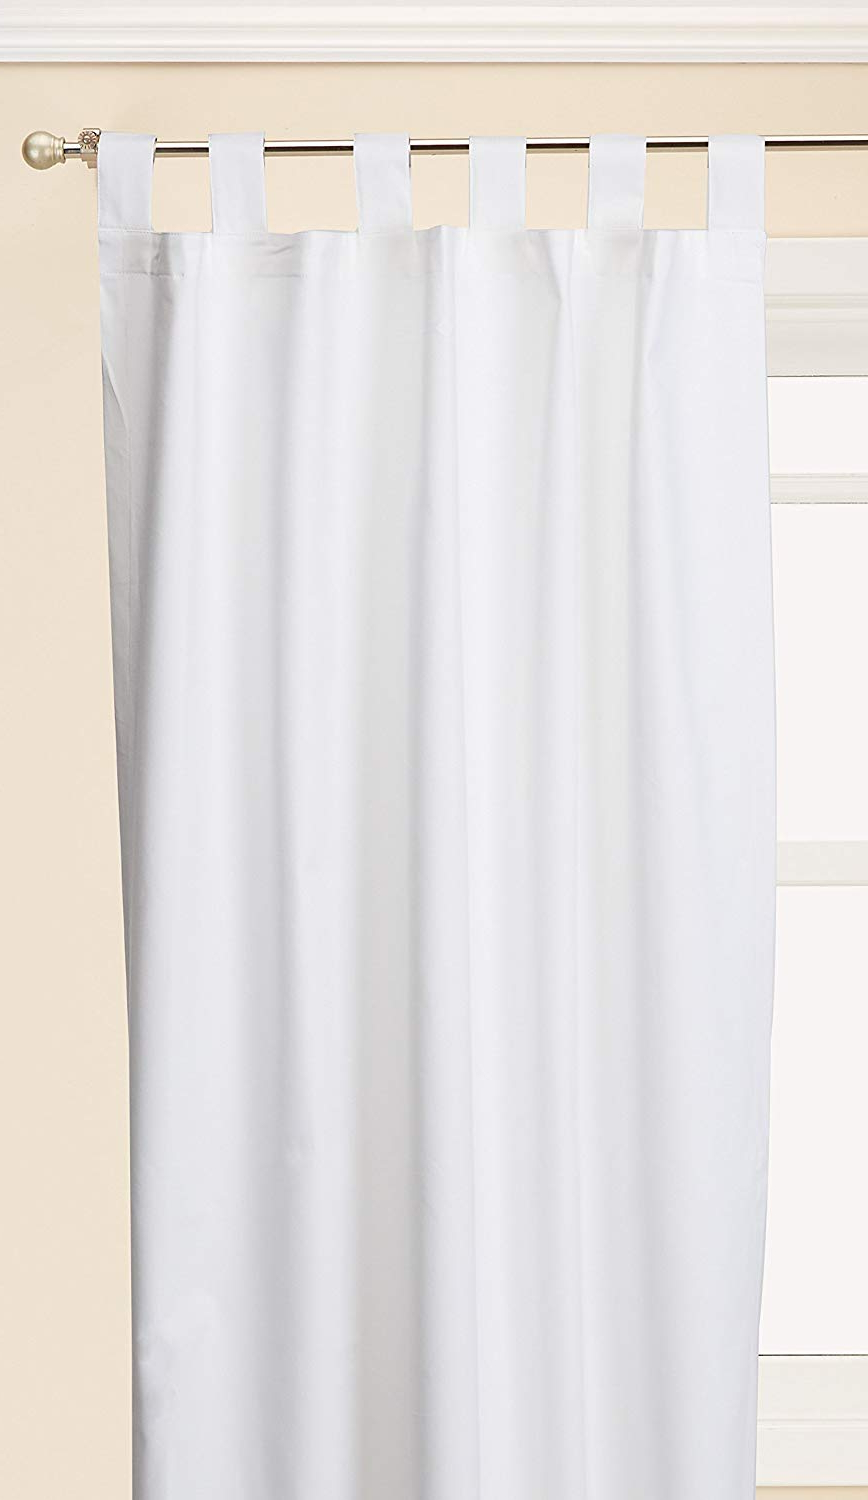 """Weathermate Thermalogic Insulated Cotton Panels, 8063"""" White For 2020 Insulated Cotton Curtain Panel Pairs (View 6 of 20)"""